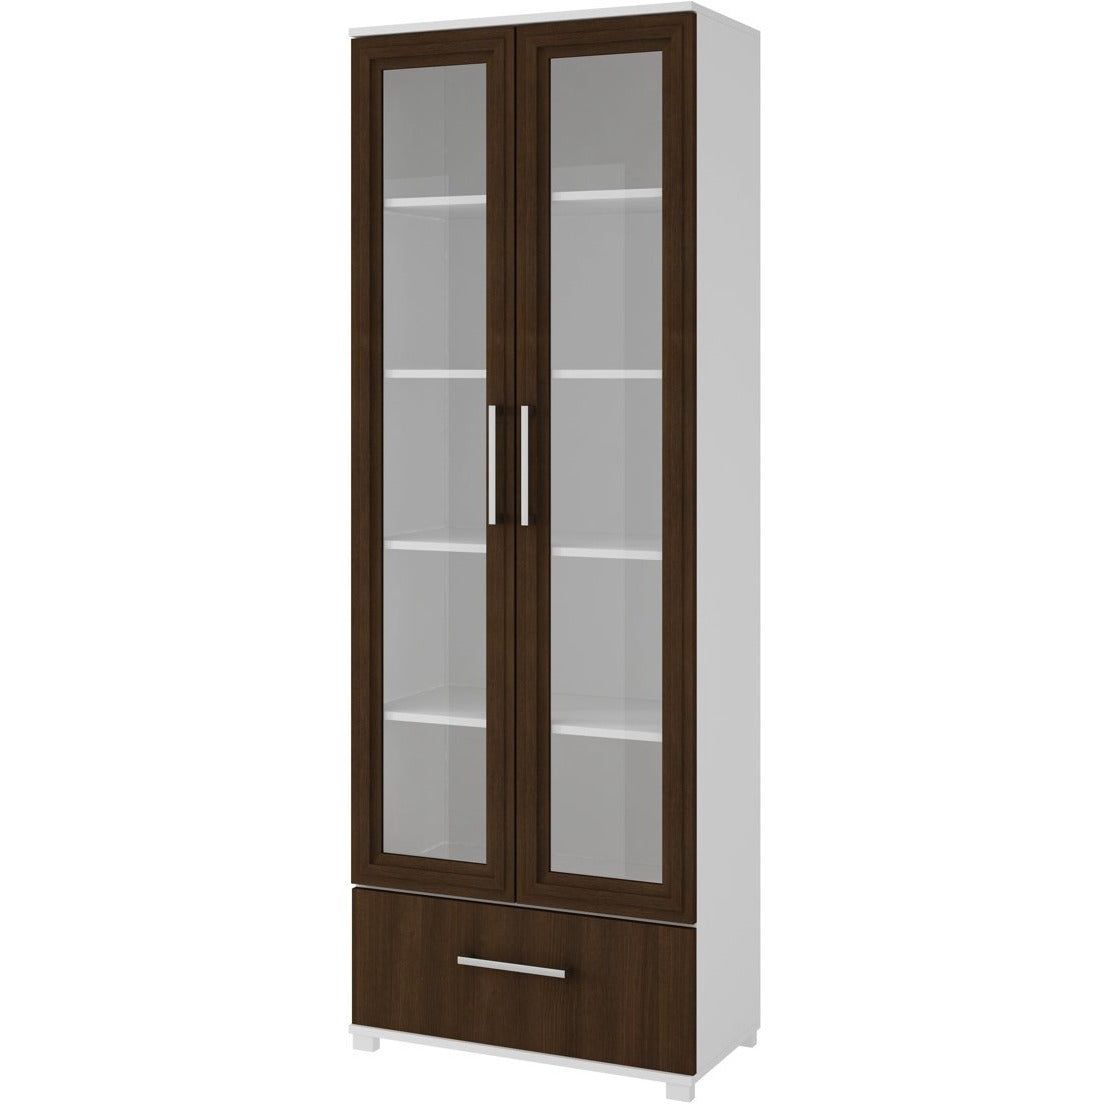 Accentuations by Manhattan Comfort Serra 1.0 - 5-Shelf Bookcase in White and Tobacco-Minimal & Modern